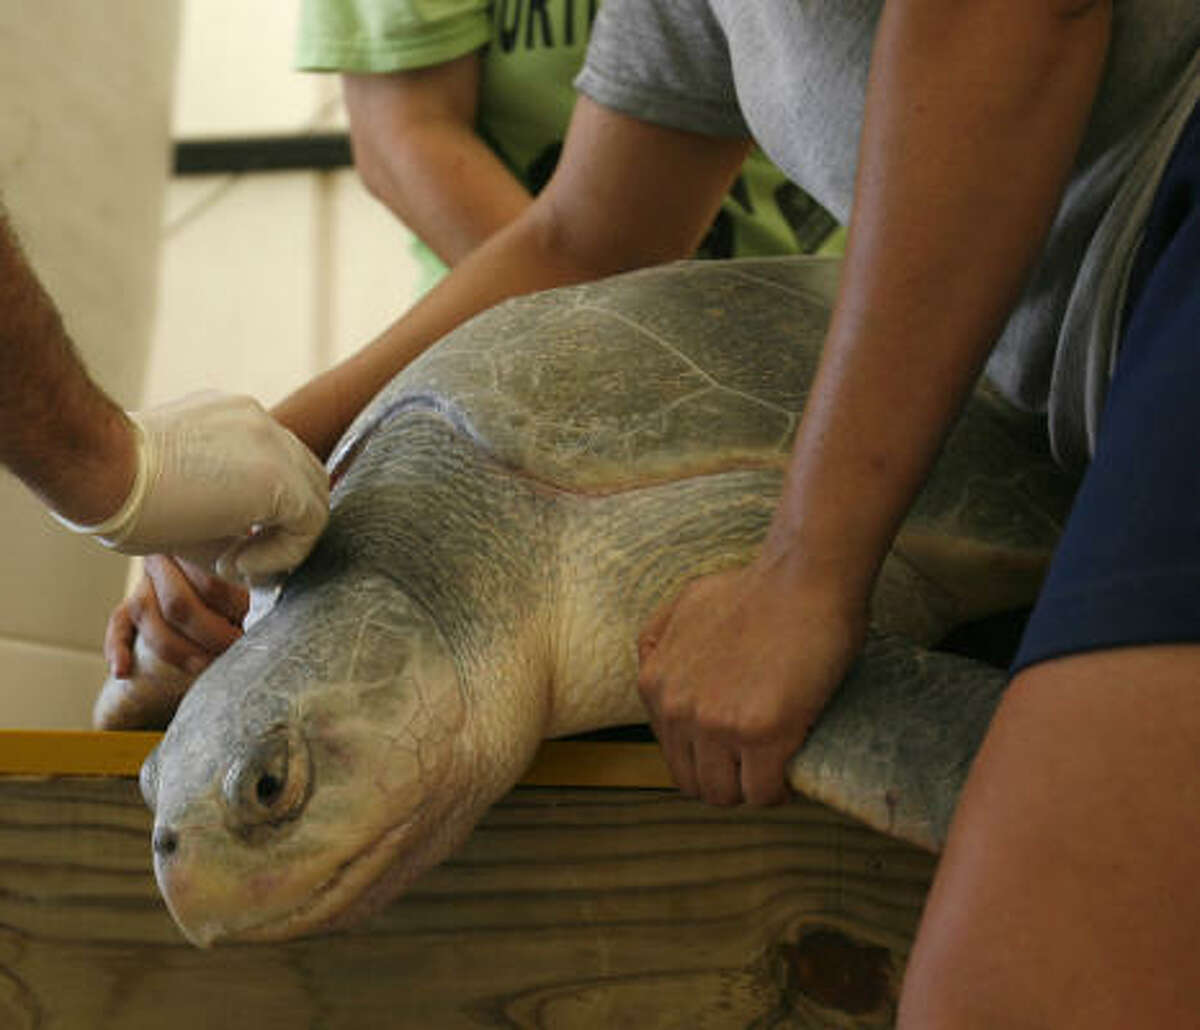 Ben Higgins, the sea turtle program manager for NOAA, left, tries to get blood from a young nesting sea turtle as Lyndsey Howell, Fishery Biologist for NOAA, and Jeanine Stewart, an A&M grad student and turtle patrol coordinator for the Sea Turtle and Fishery Ecology research lab, hold her.